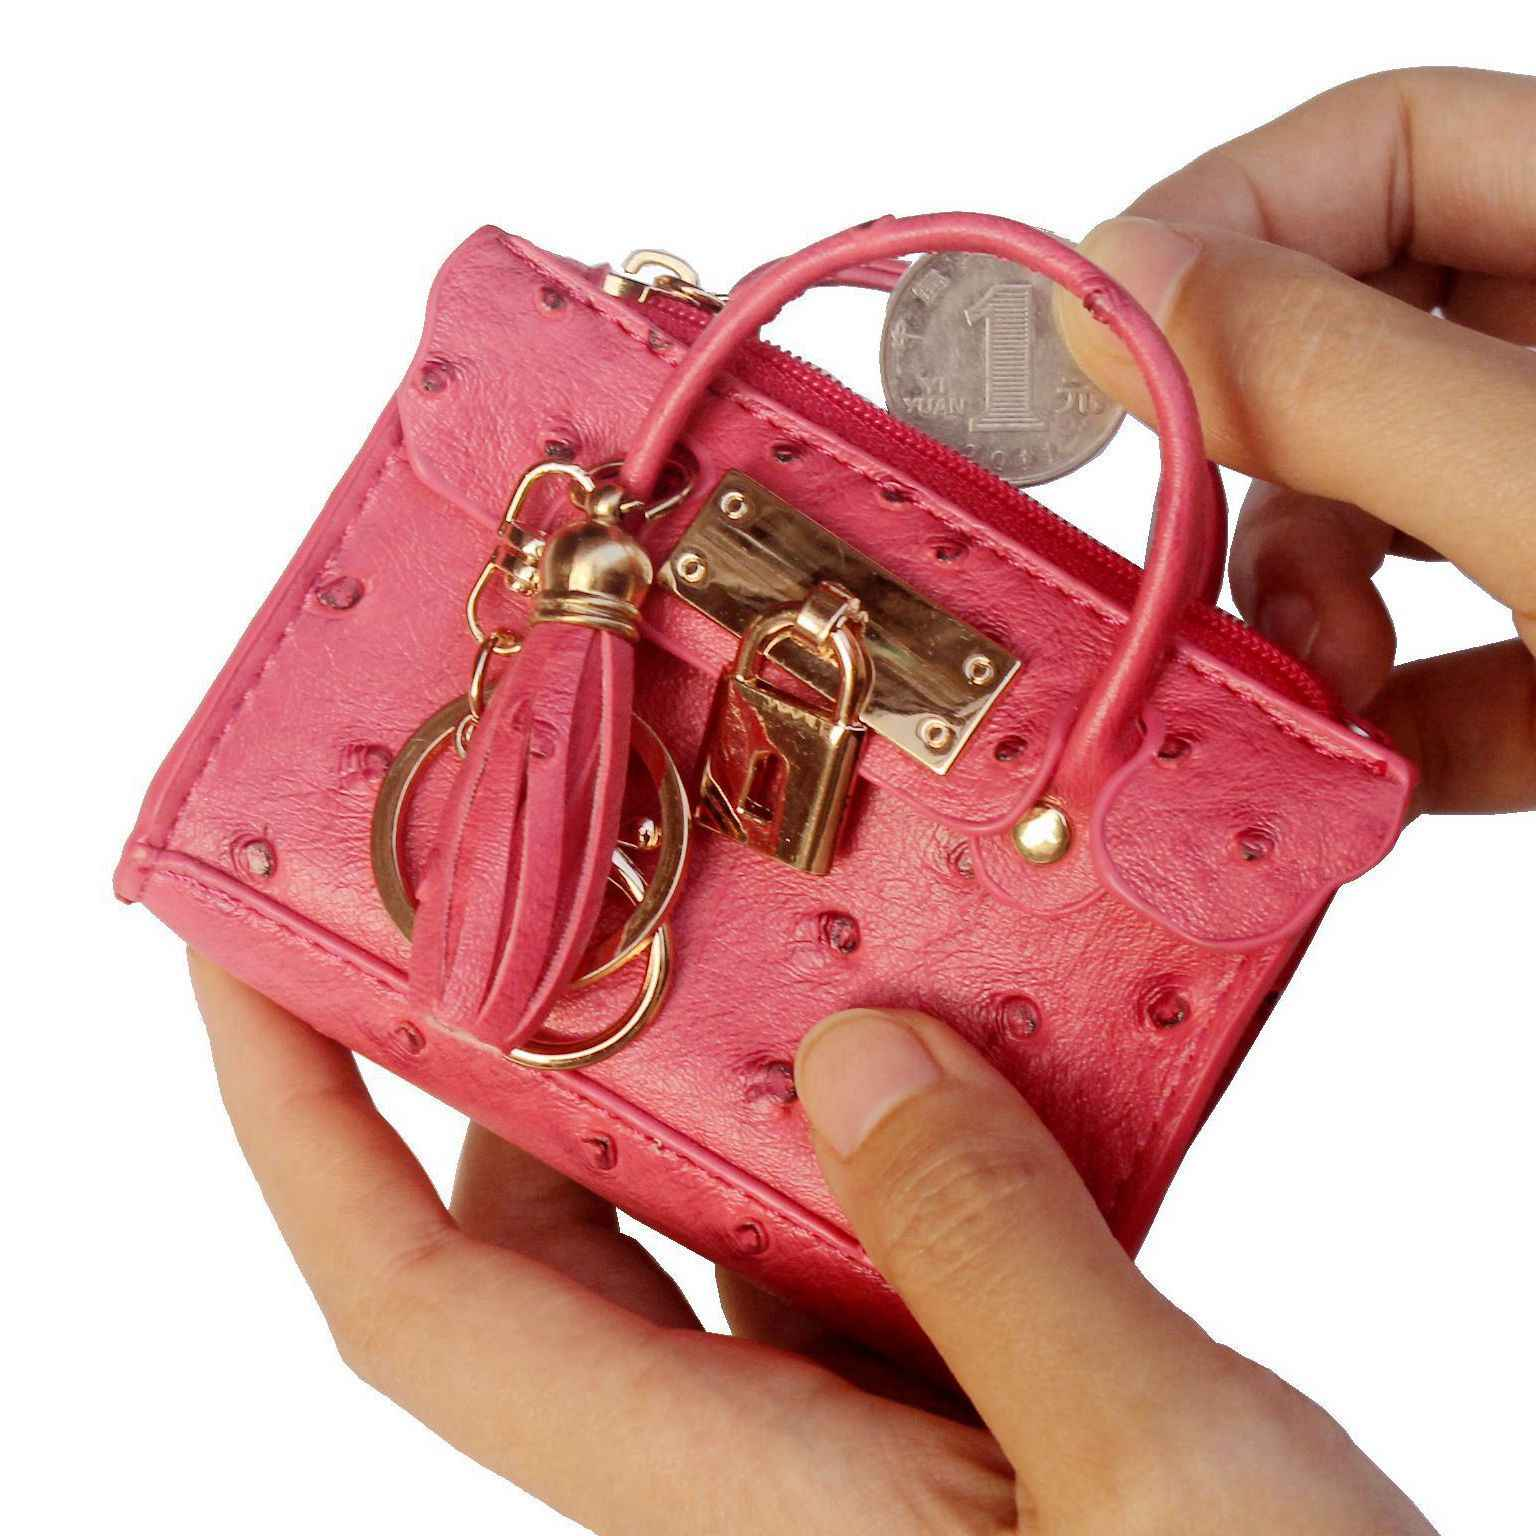 Fashion Leather Coin Purse Tassel Women Mini Handbag Lock Decoration Small Change Wallet Key Ring Holder Carteira